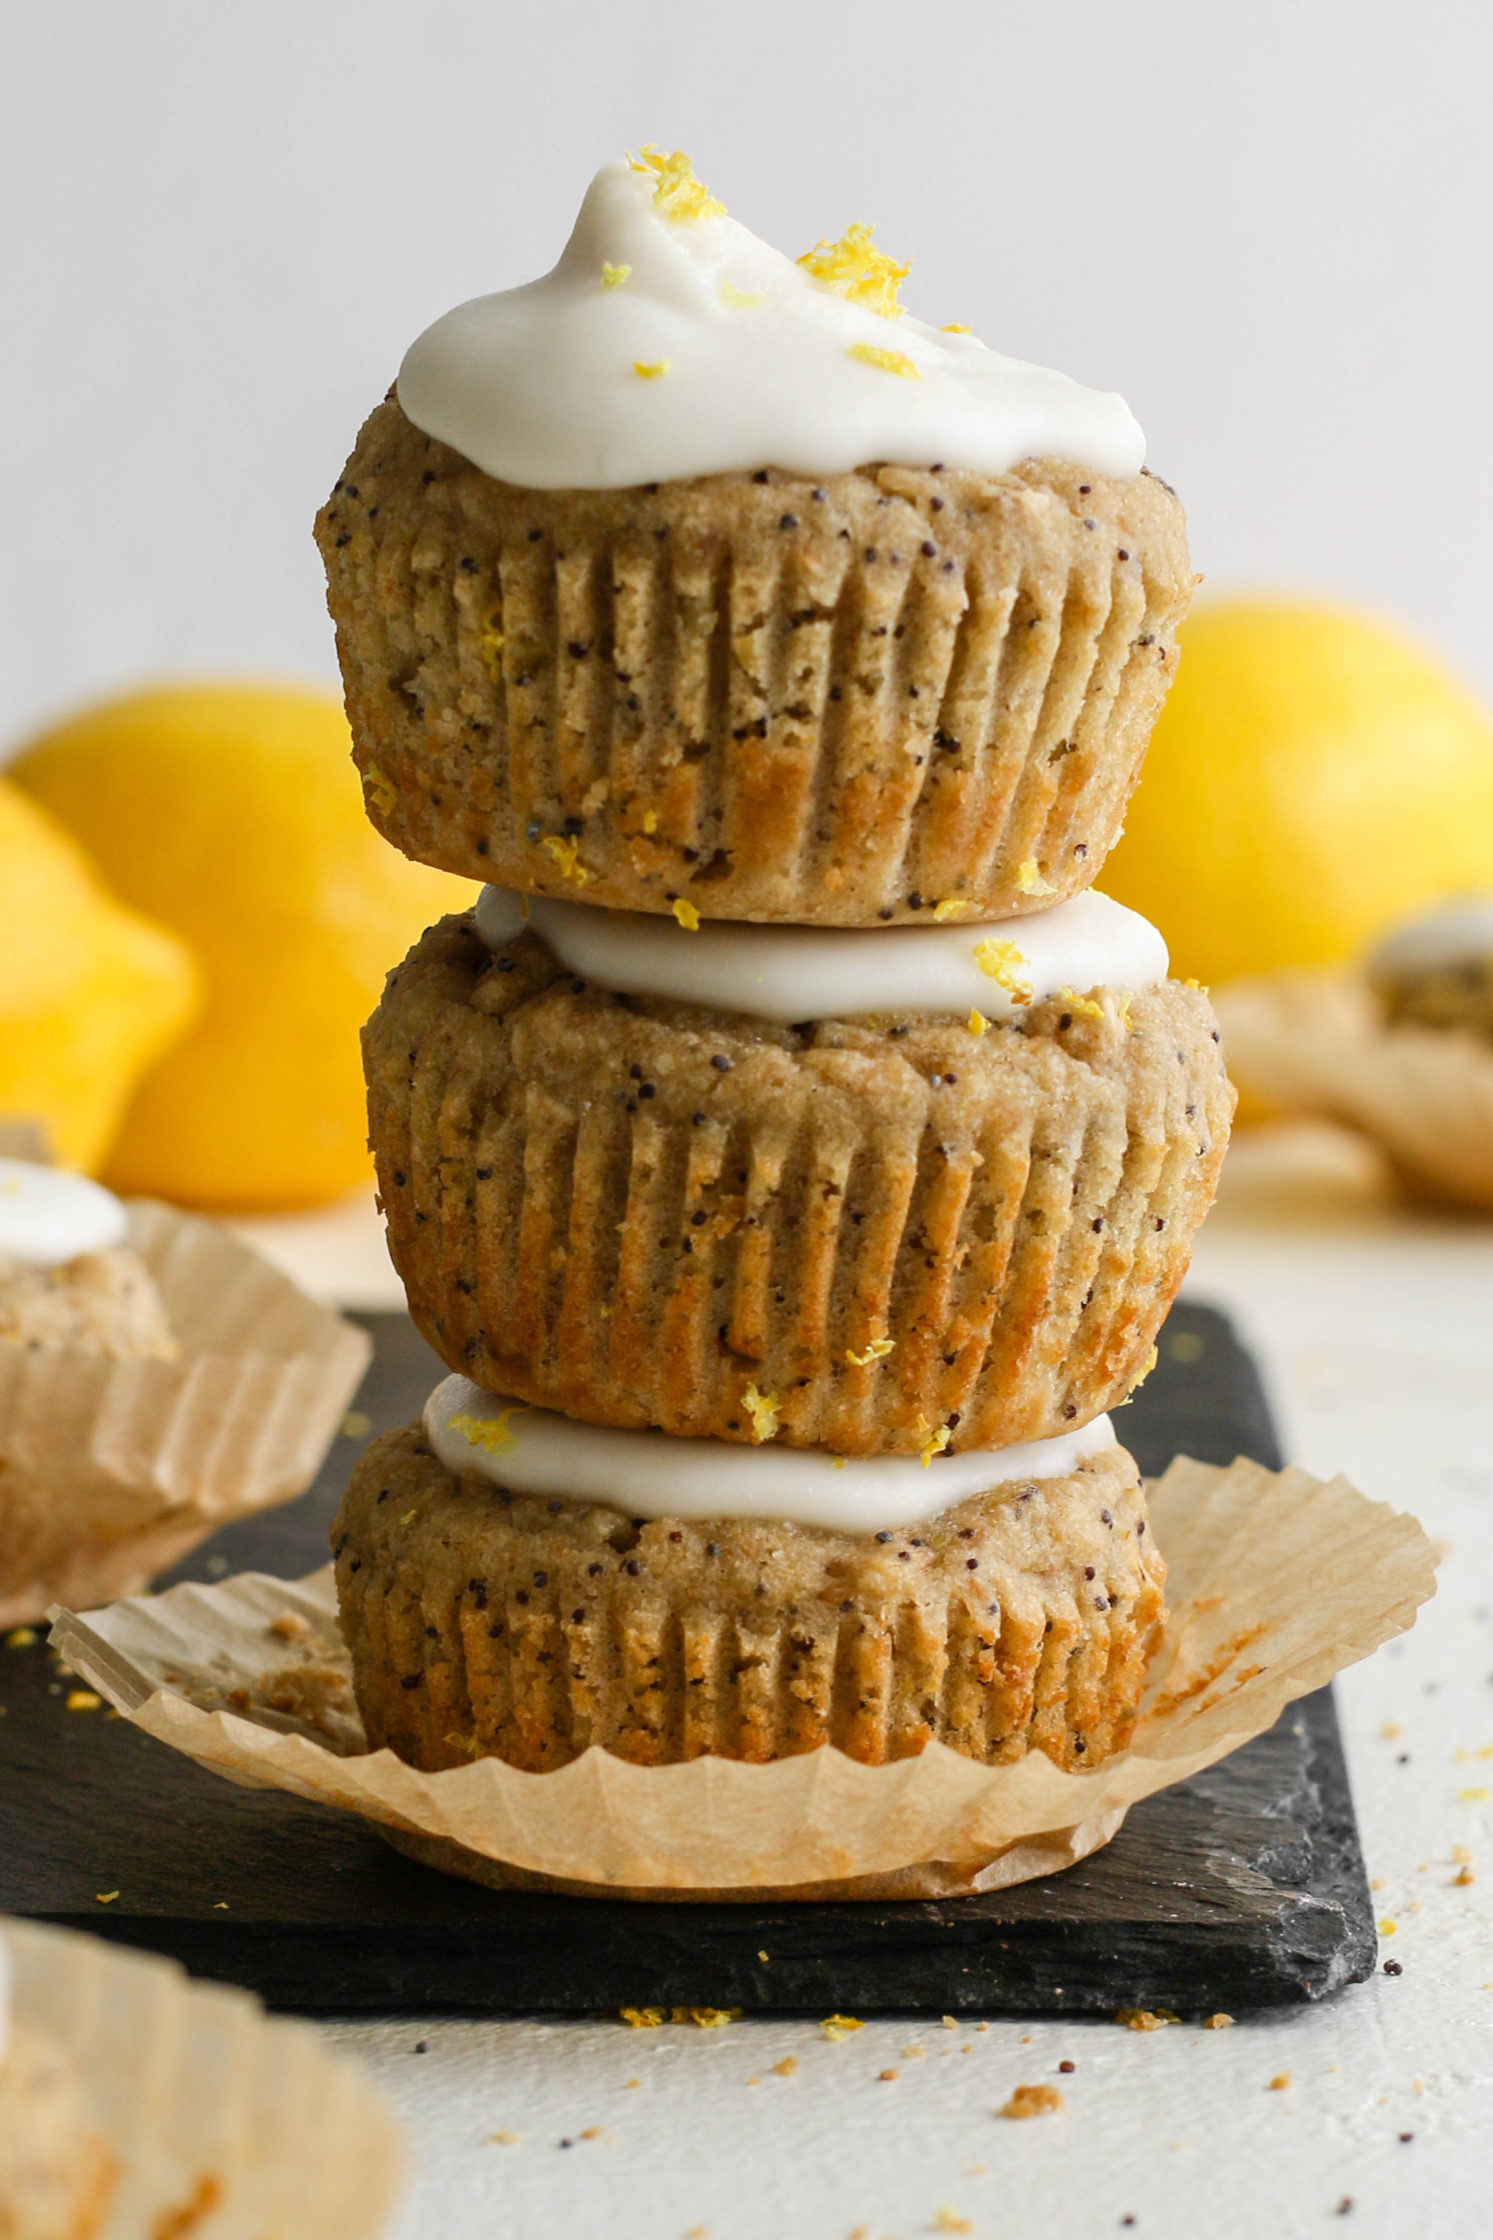 Lemon Poppyseed Muffins with Coconut Butter Glaze by Flora & Vino